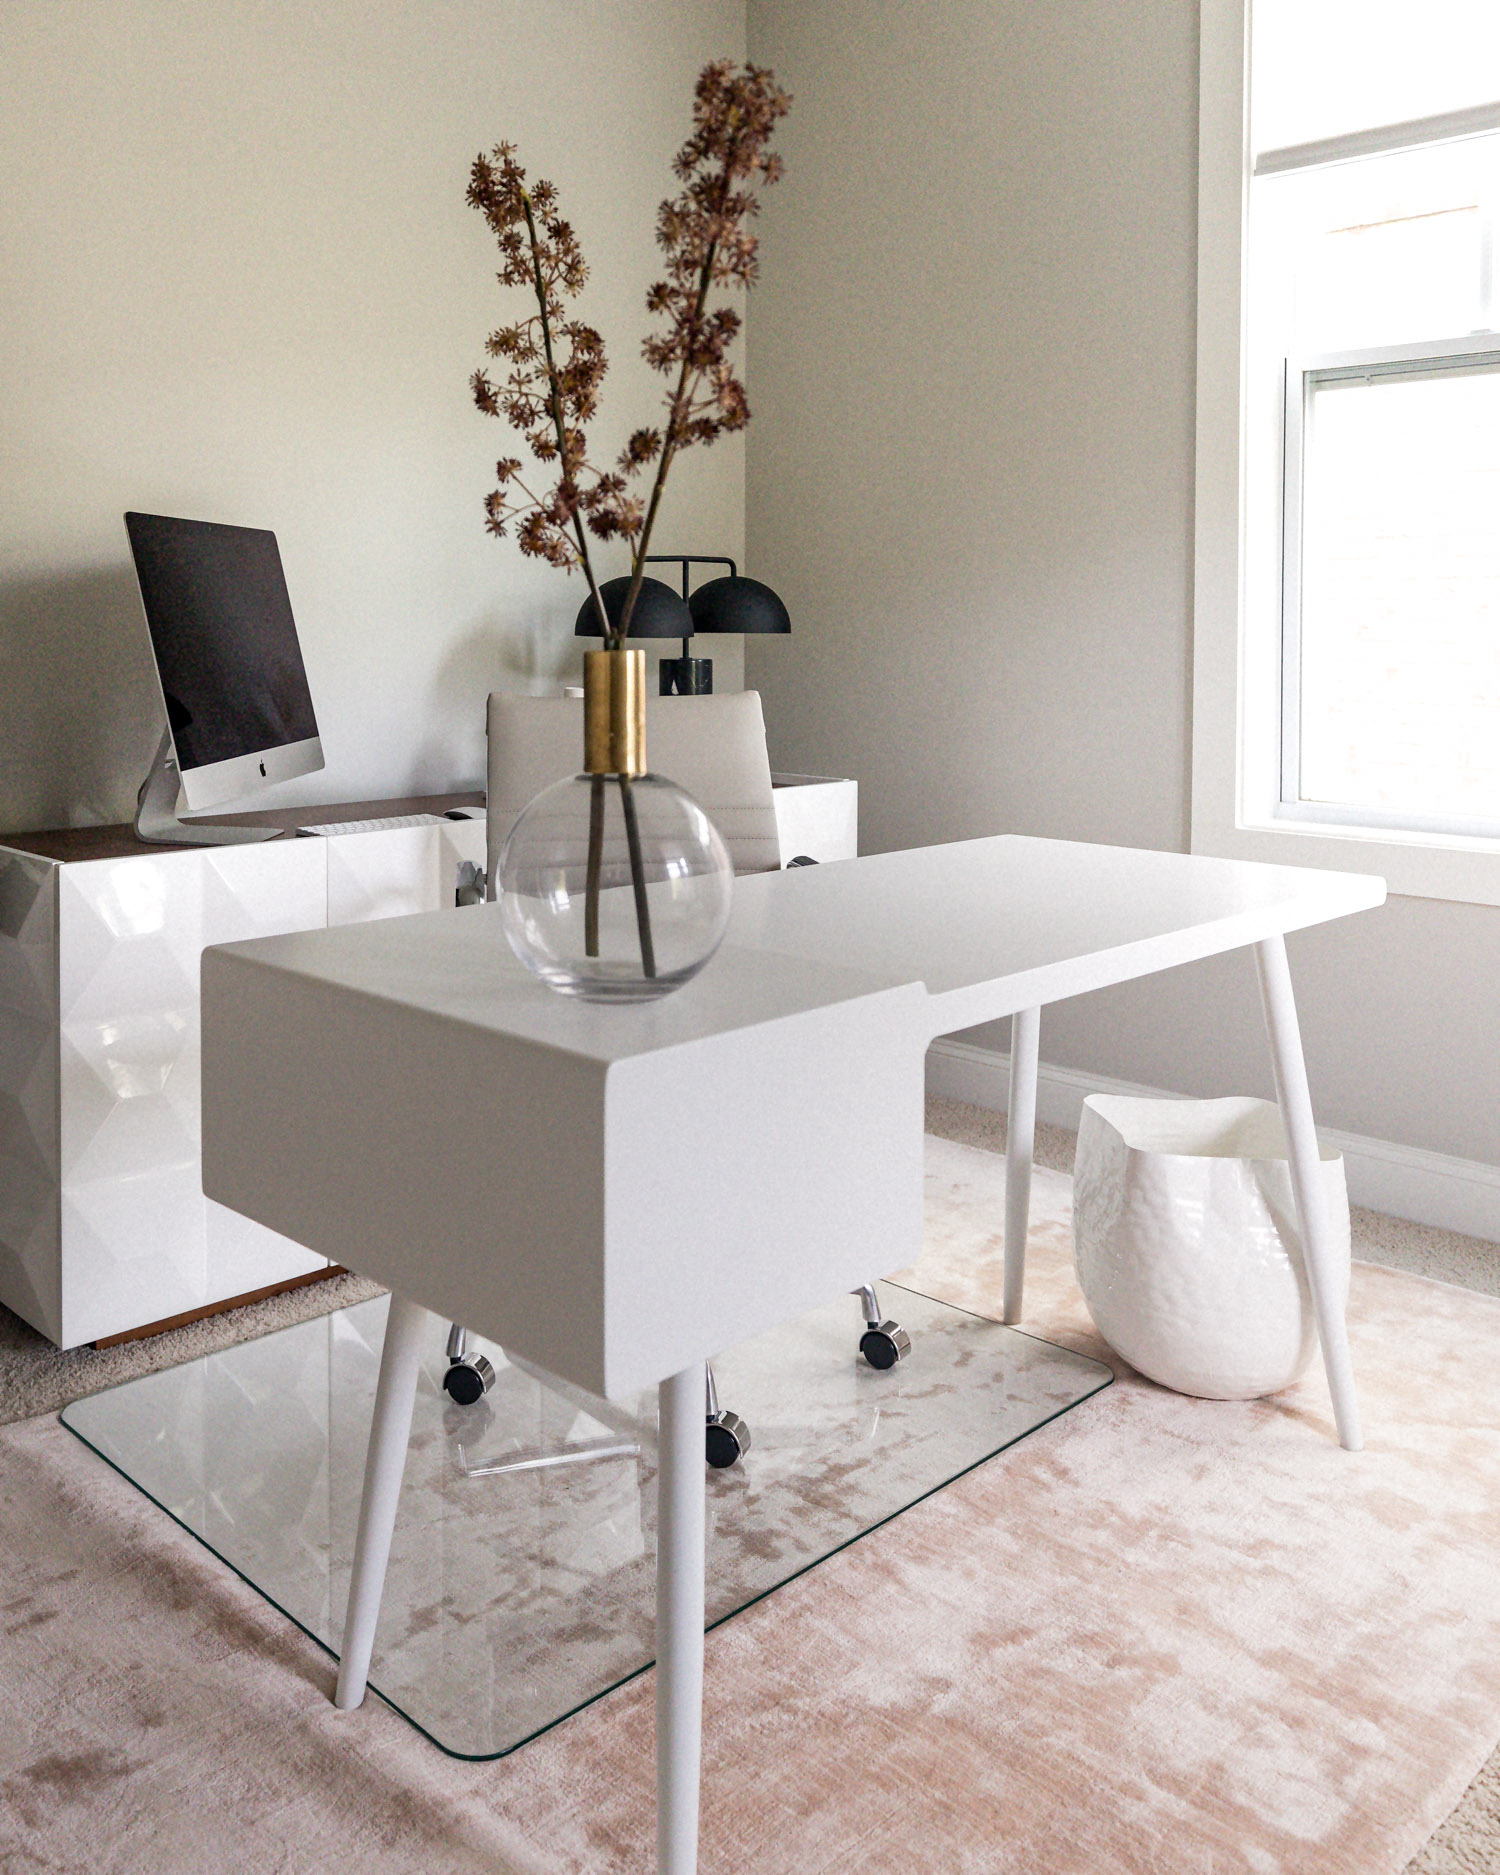 atlanta fashion blogger reveals her at home office, work from home, how to create a functional work from home space, how to create a home office, home office tour, home office reveal, wfh